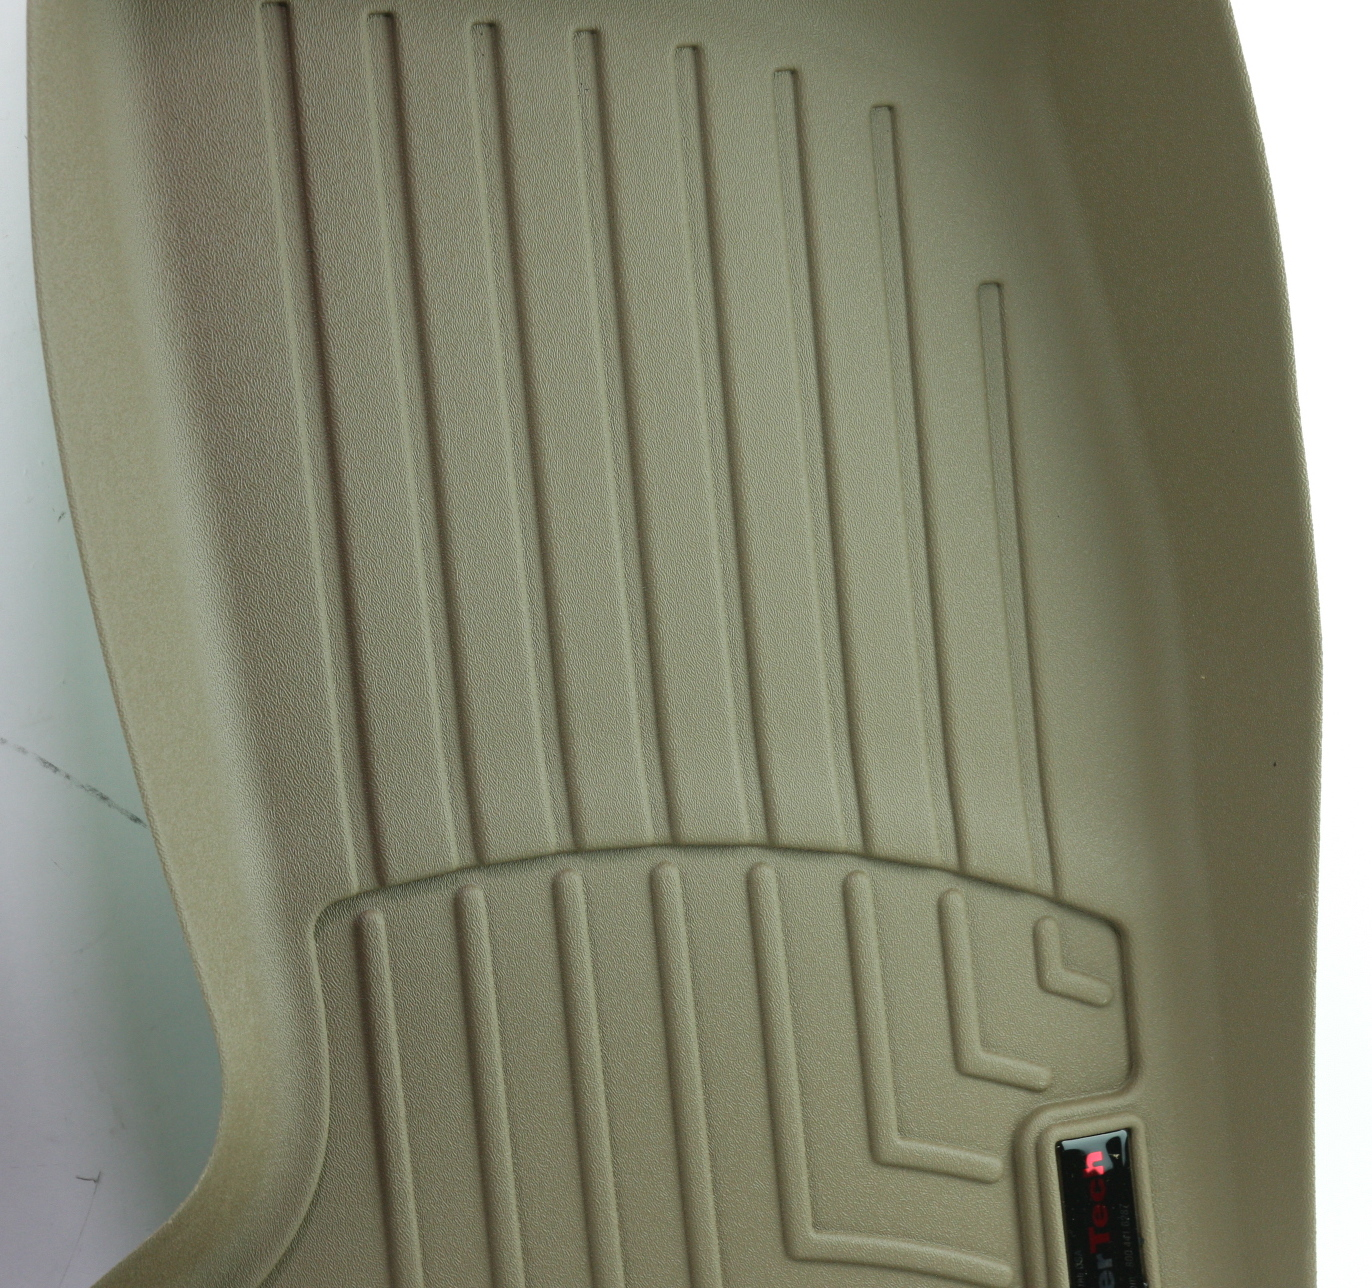 *** New WeatherTech 454251 Front Floor Liner for Challenger Charger 300 AWD Tan - image 8